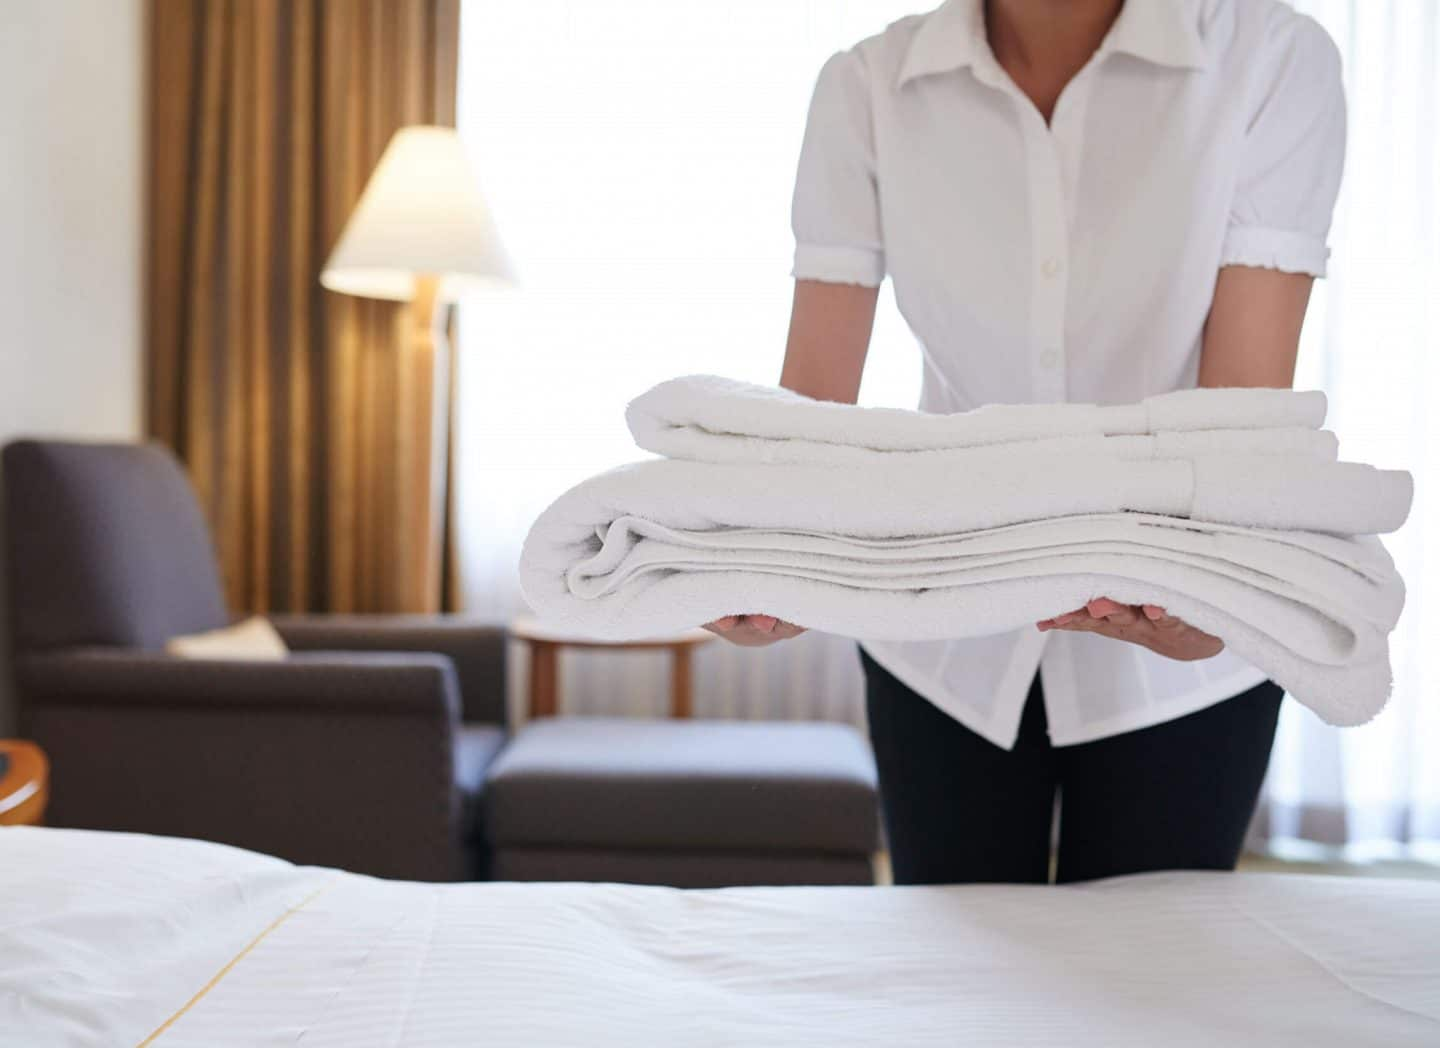 Luxury hotel housekeeping